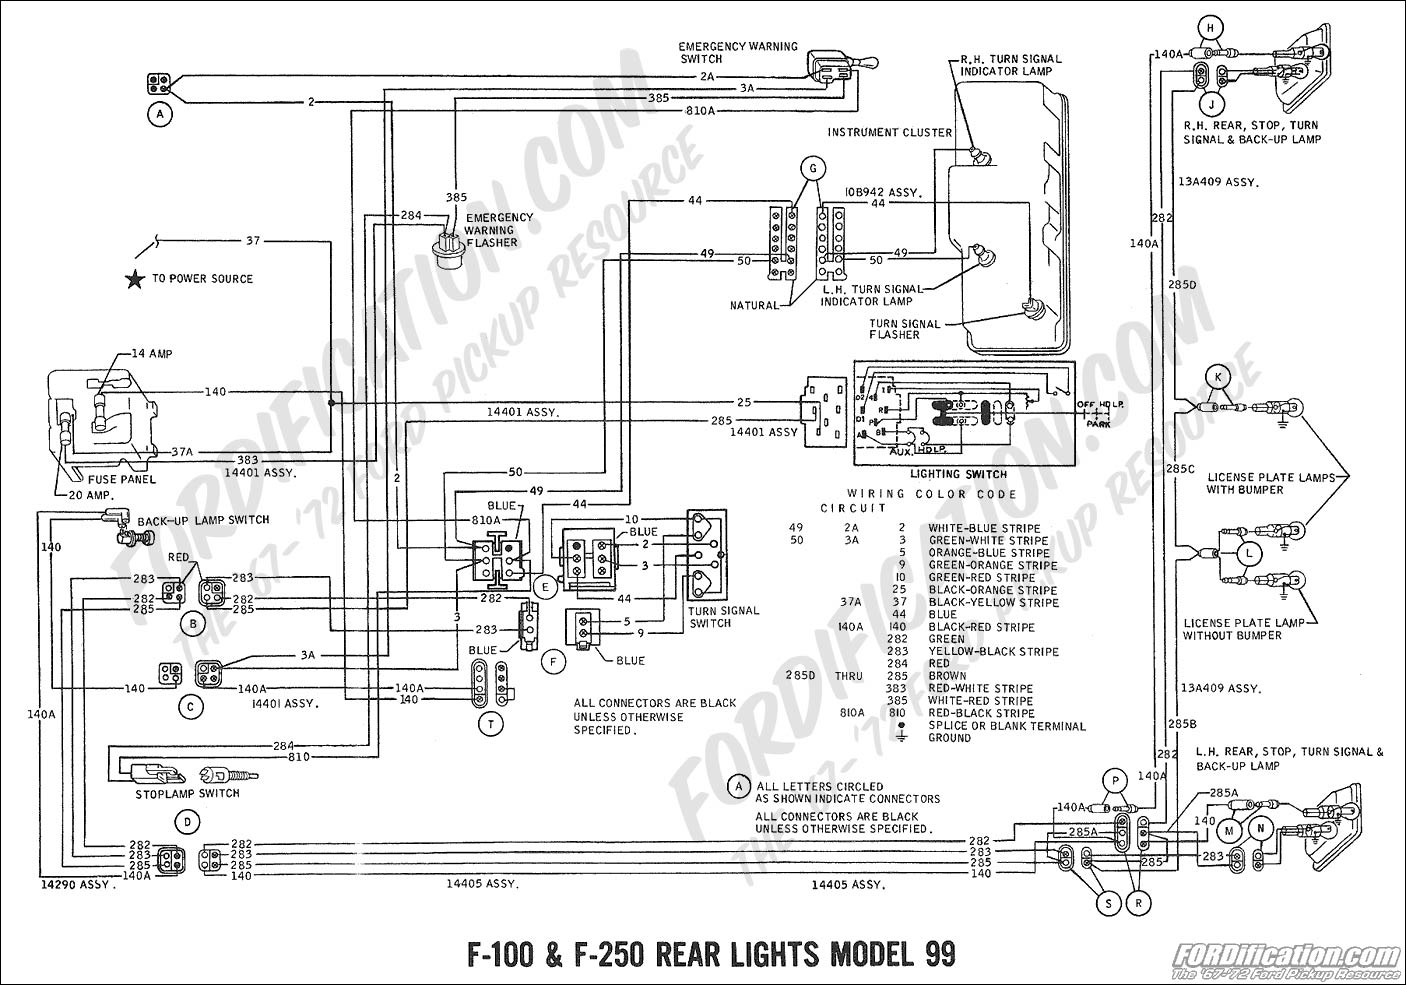 1991 Dodge Truck Automatic Transmission Schematic Doing Wiring 2005 Ram 48re Diagram Ford Technical Drawings And Schematics Section H Diagrams Problems